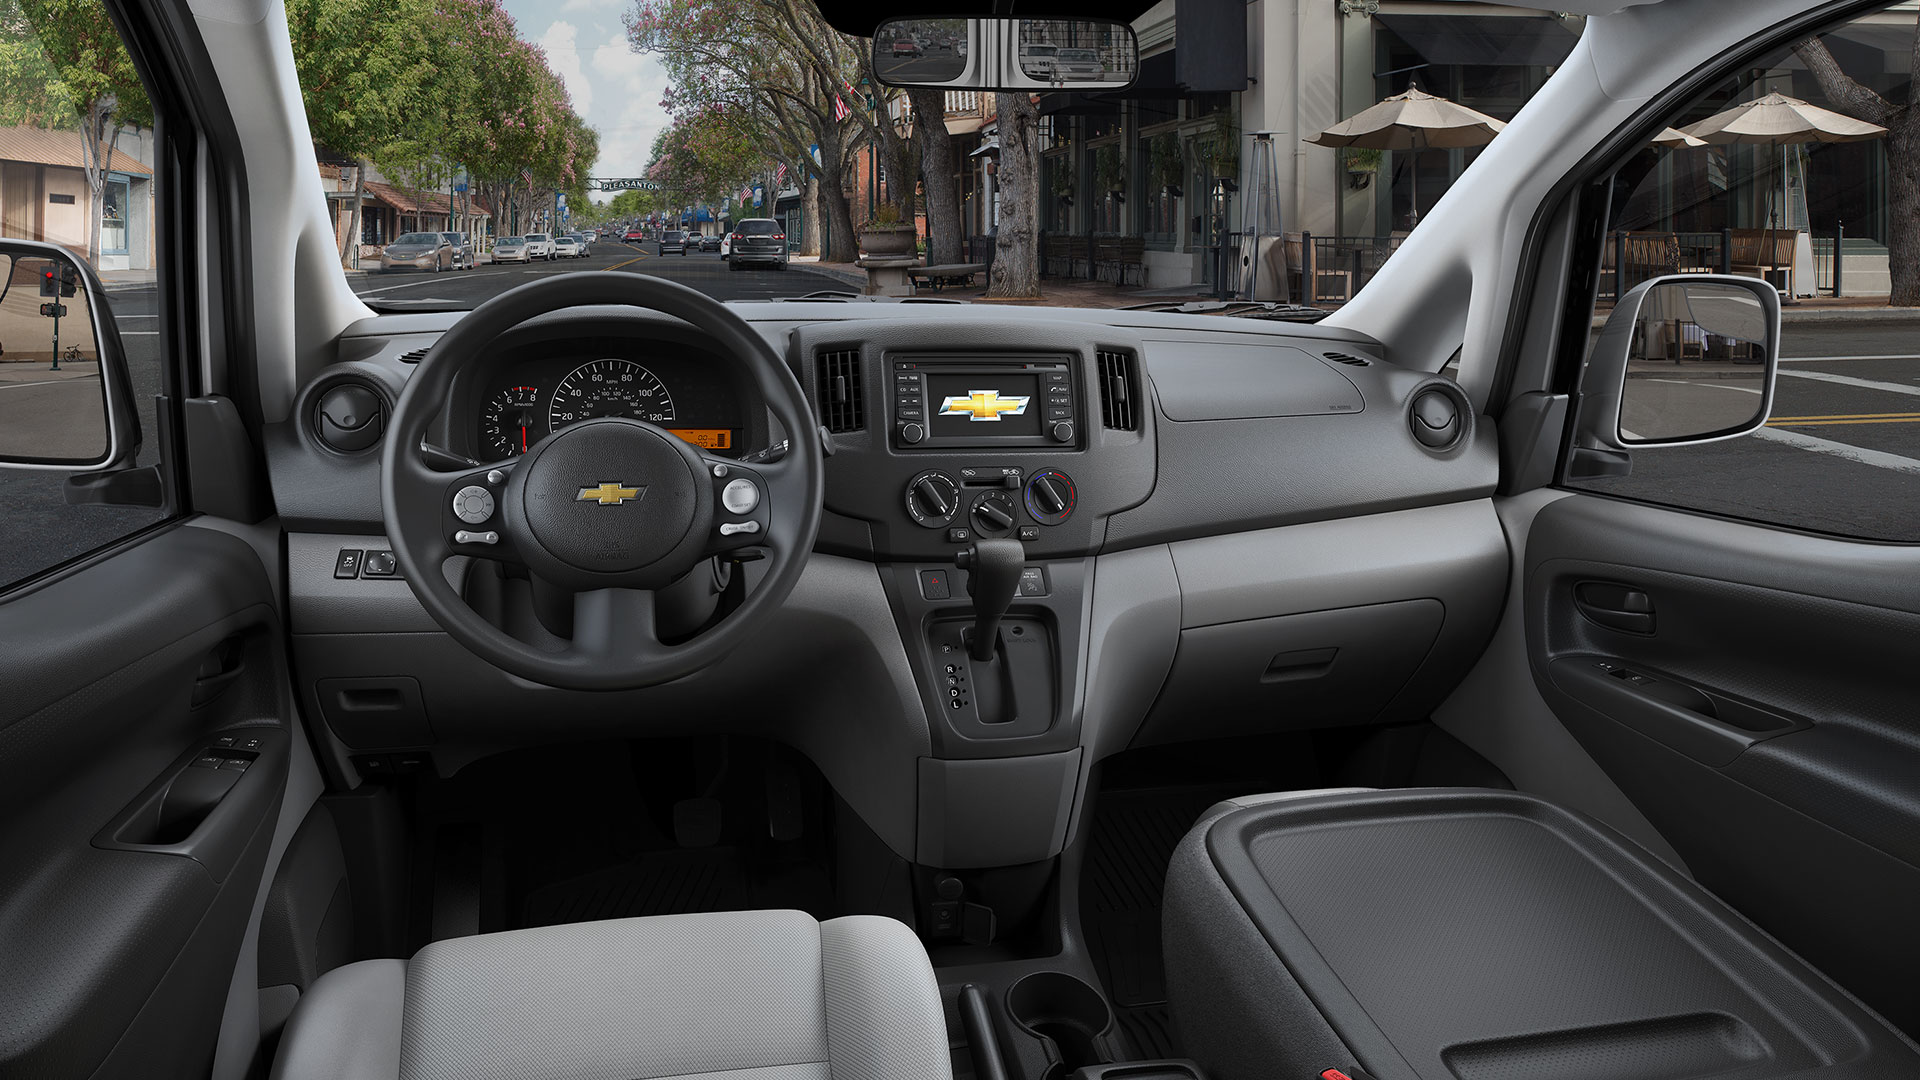 2016 Chevy City Express Commercial Van Technology